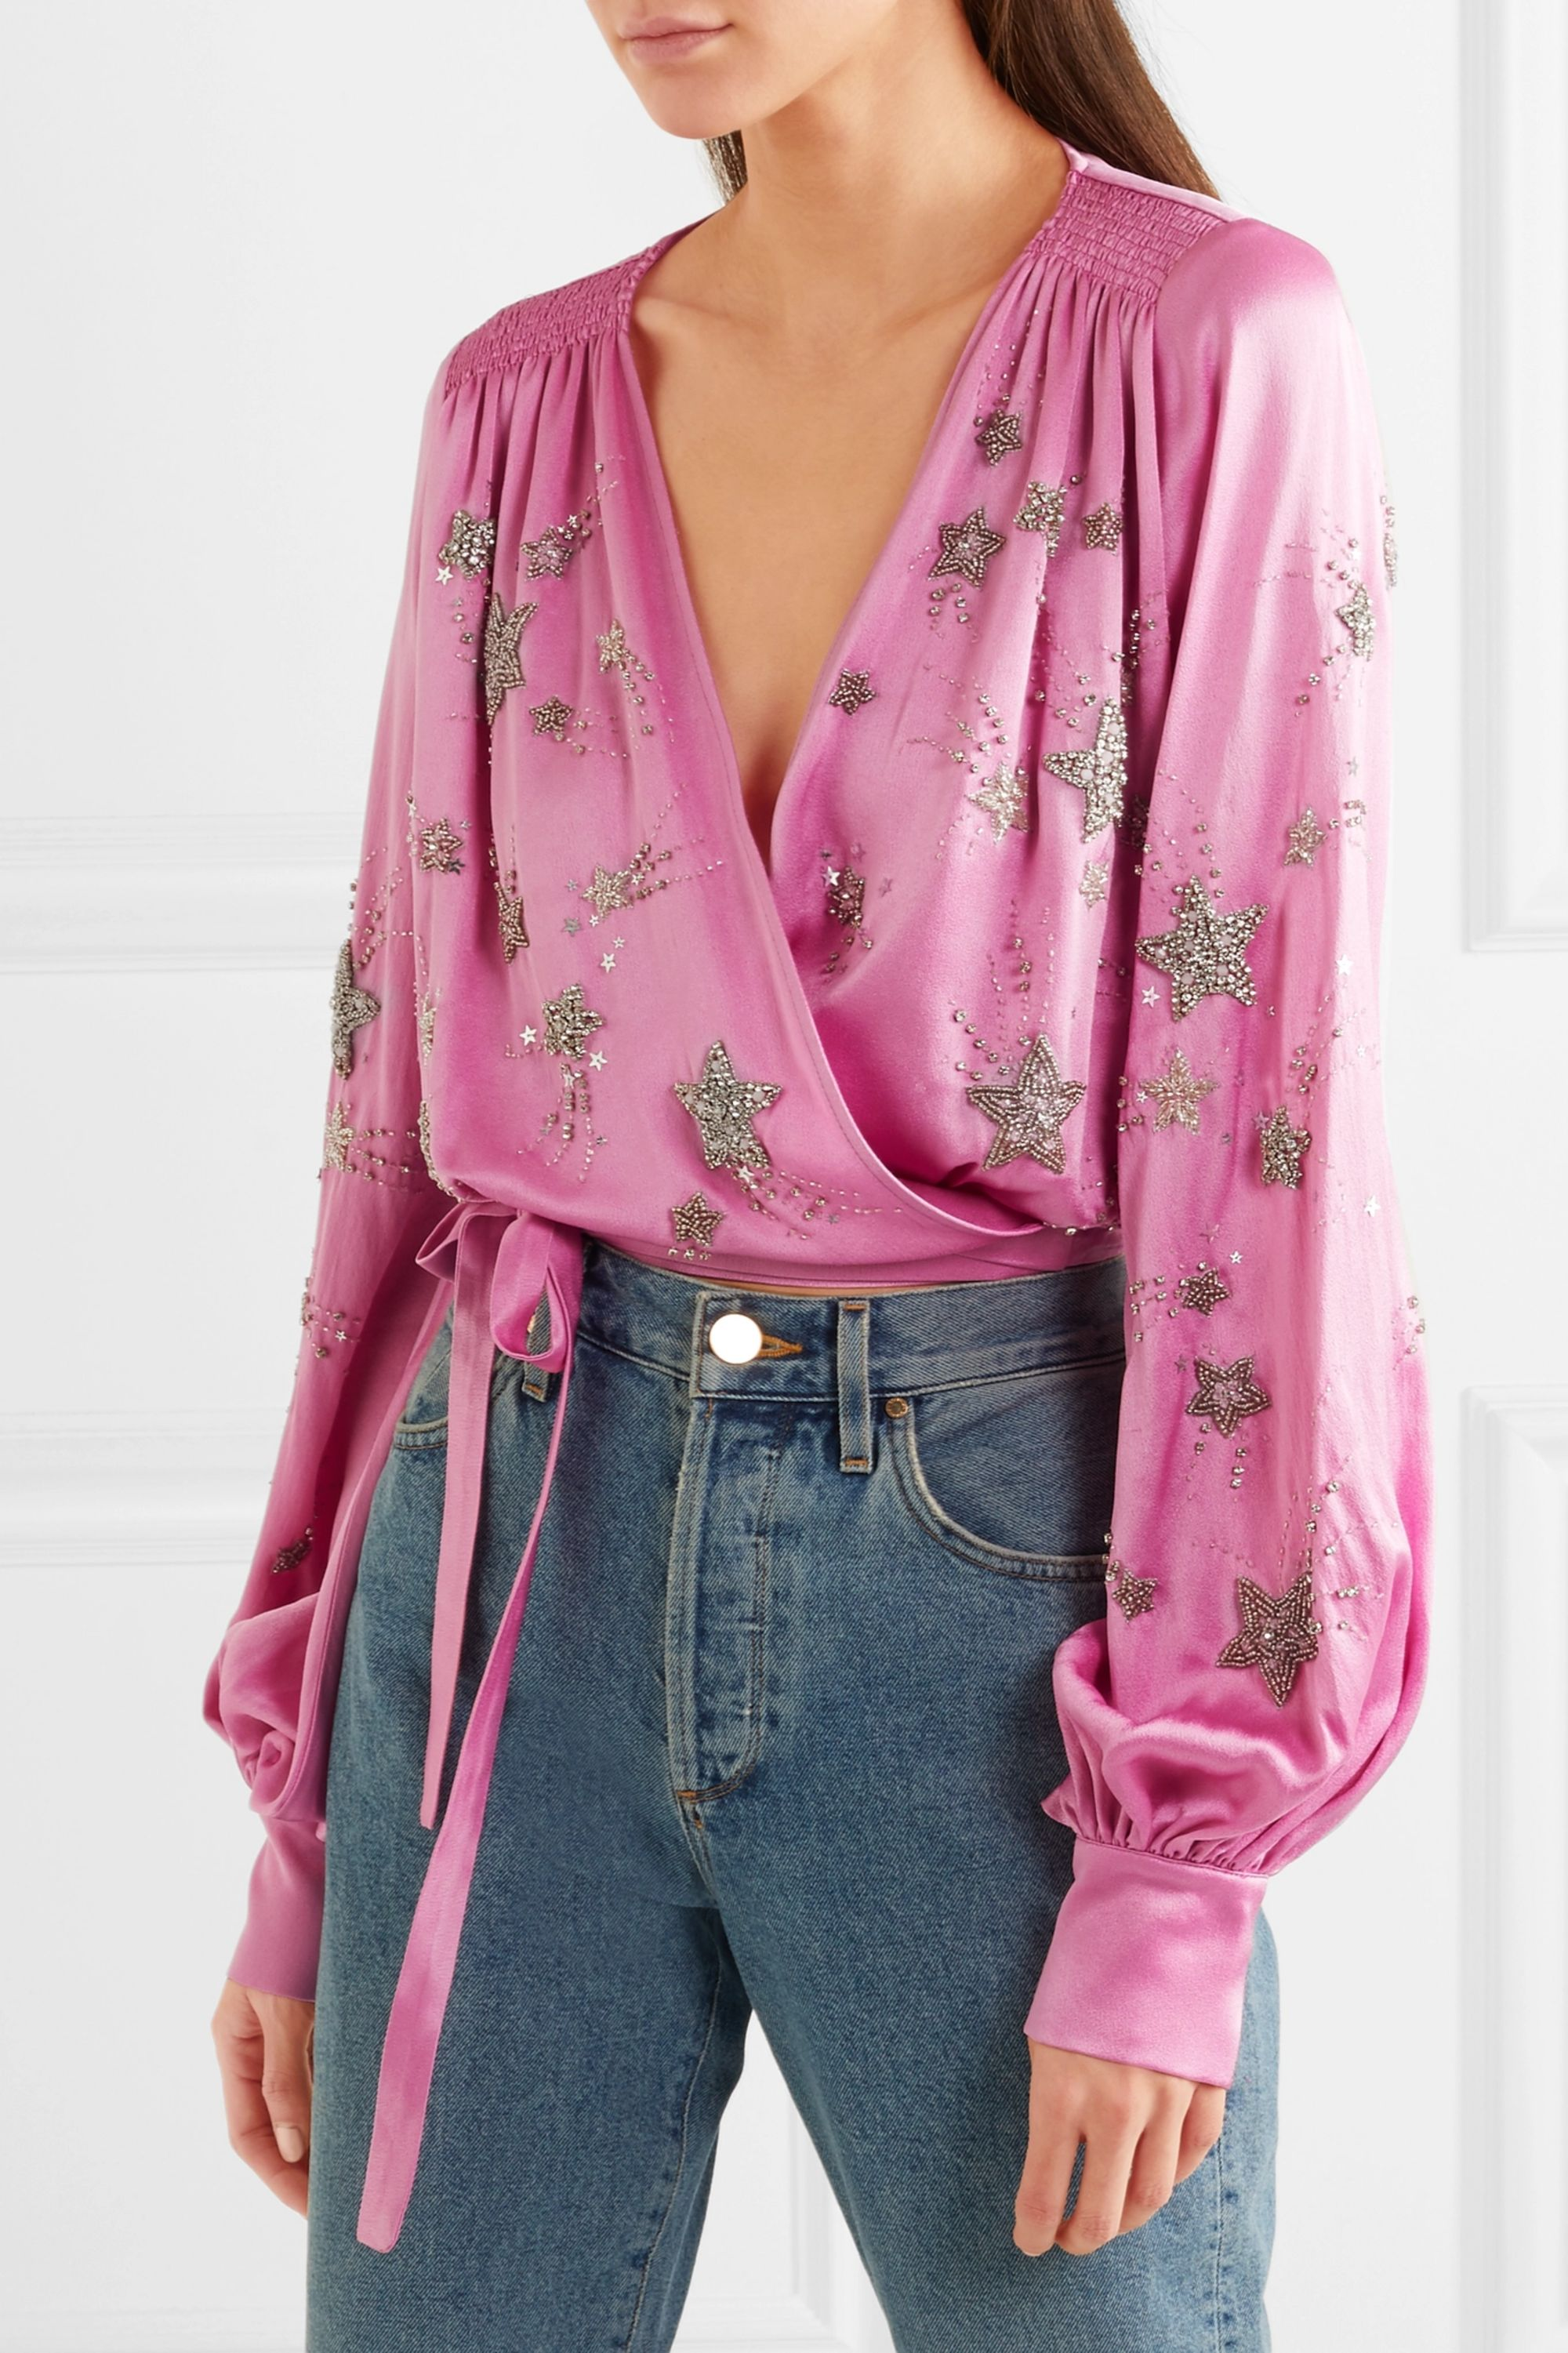 The Attico Embellished satin wrap top